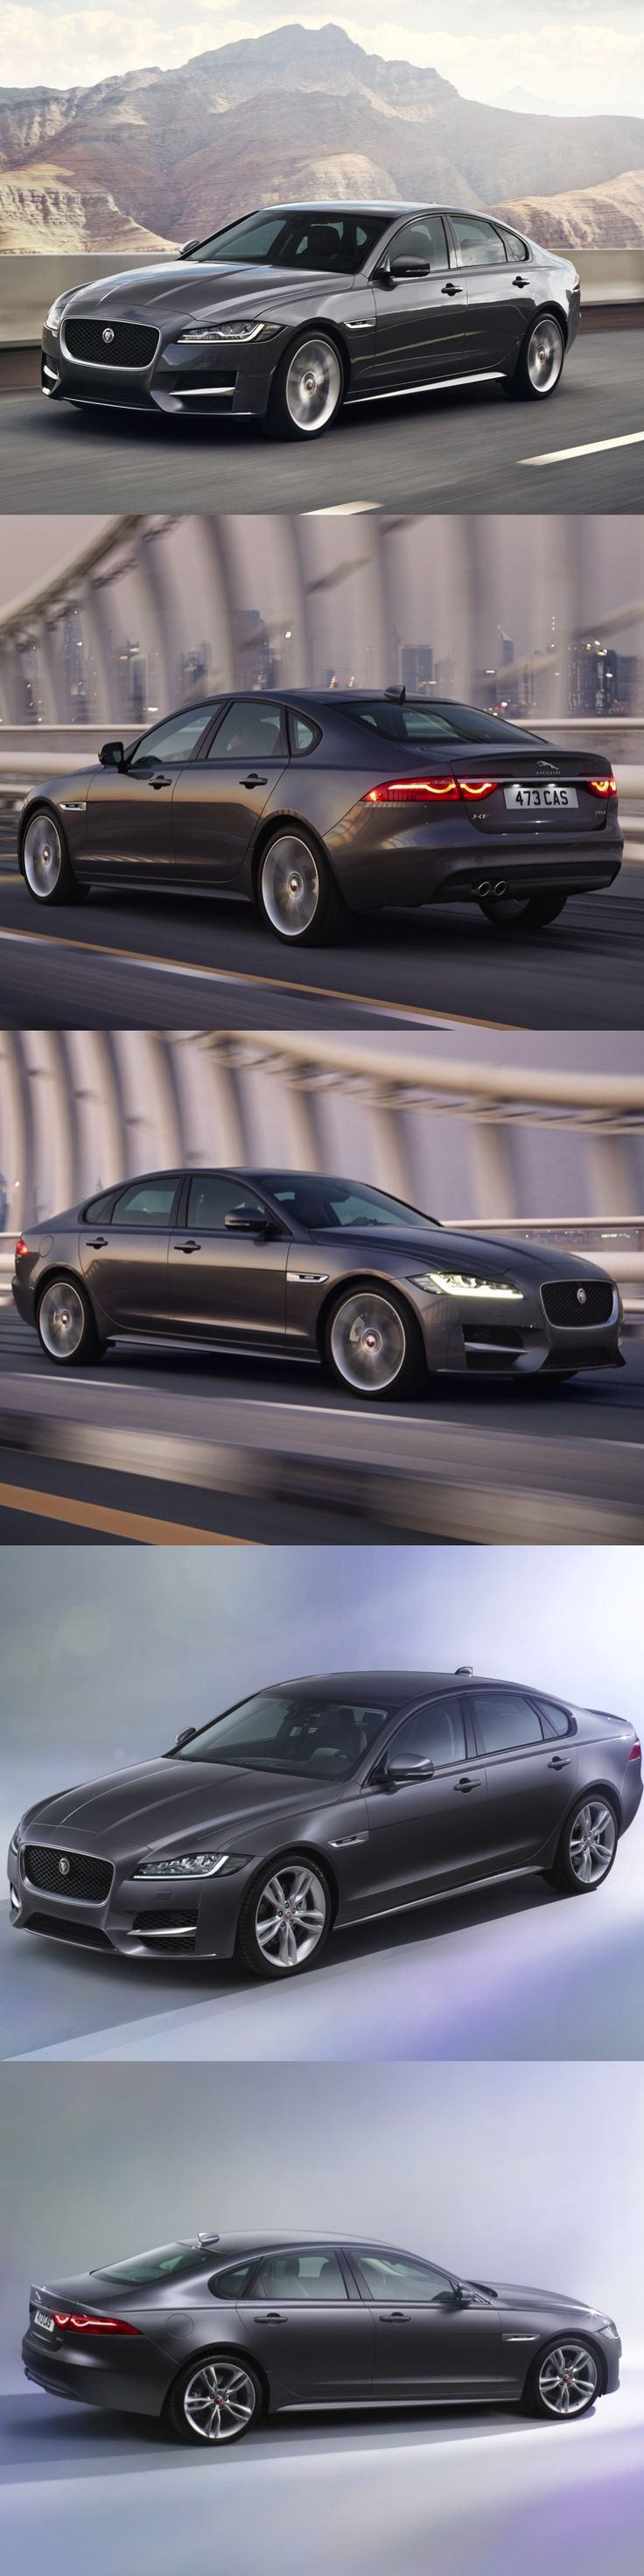 The Feature Filled – All-New Jaguar XF An altogether better Jaguar XF lighter, more efficient and jam packed with the latest technology. No doubt this is a beautiful new XF, however the press information for the car was so lengthy that to sum it up became an issue of what to choose. There are just features and more features. #Jaguar #XF #Newcars #LAautoshow